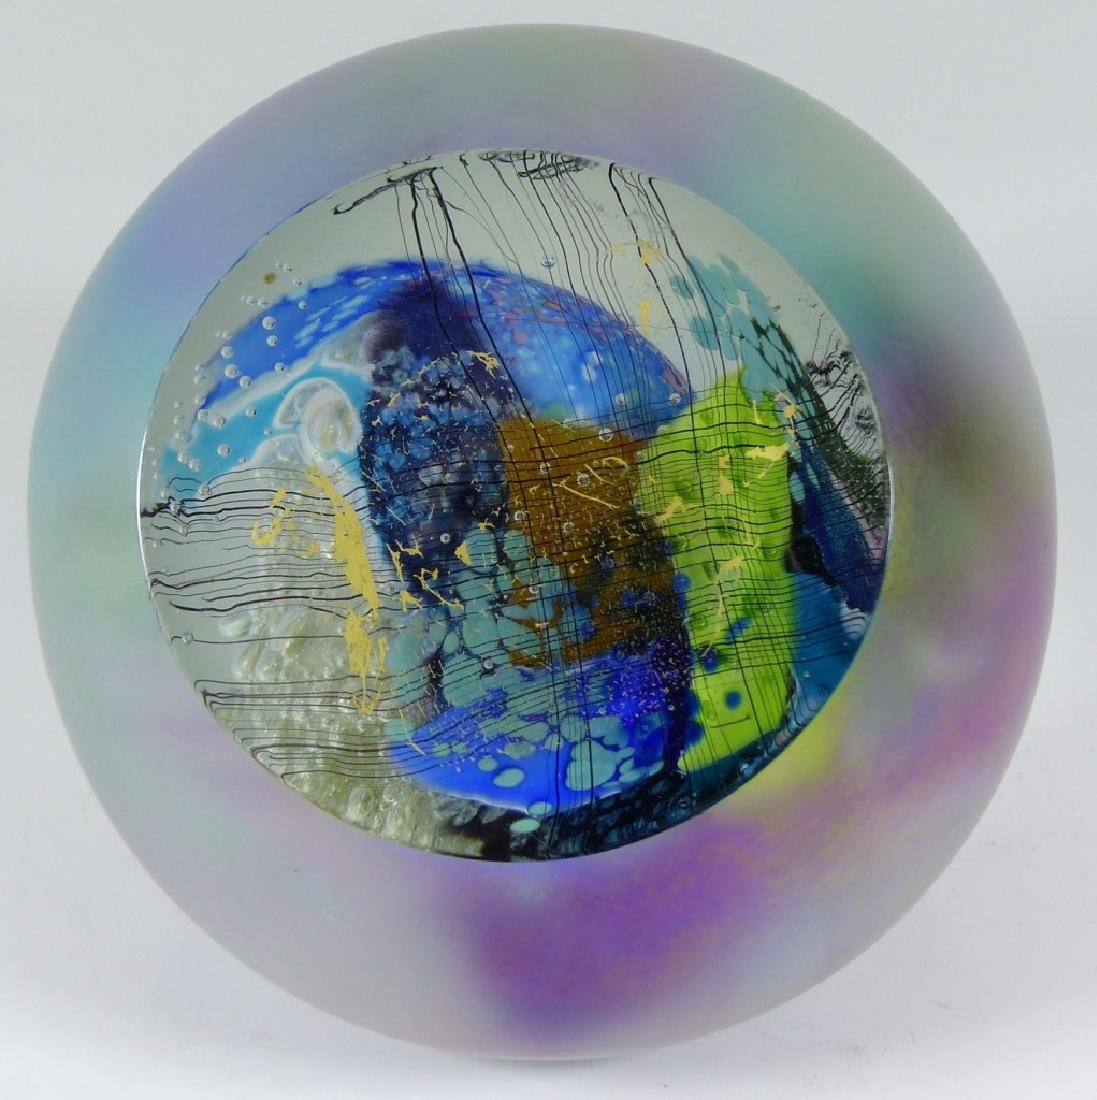 STUDIO ART GLASS PAPERWEIGHT SIGNED